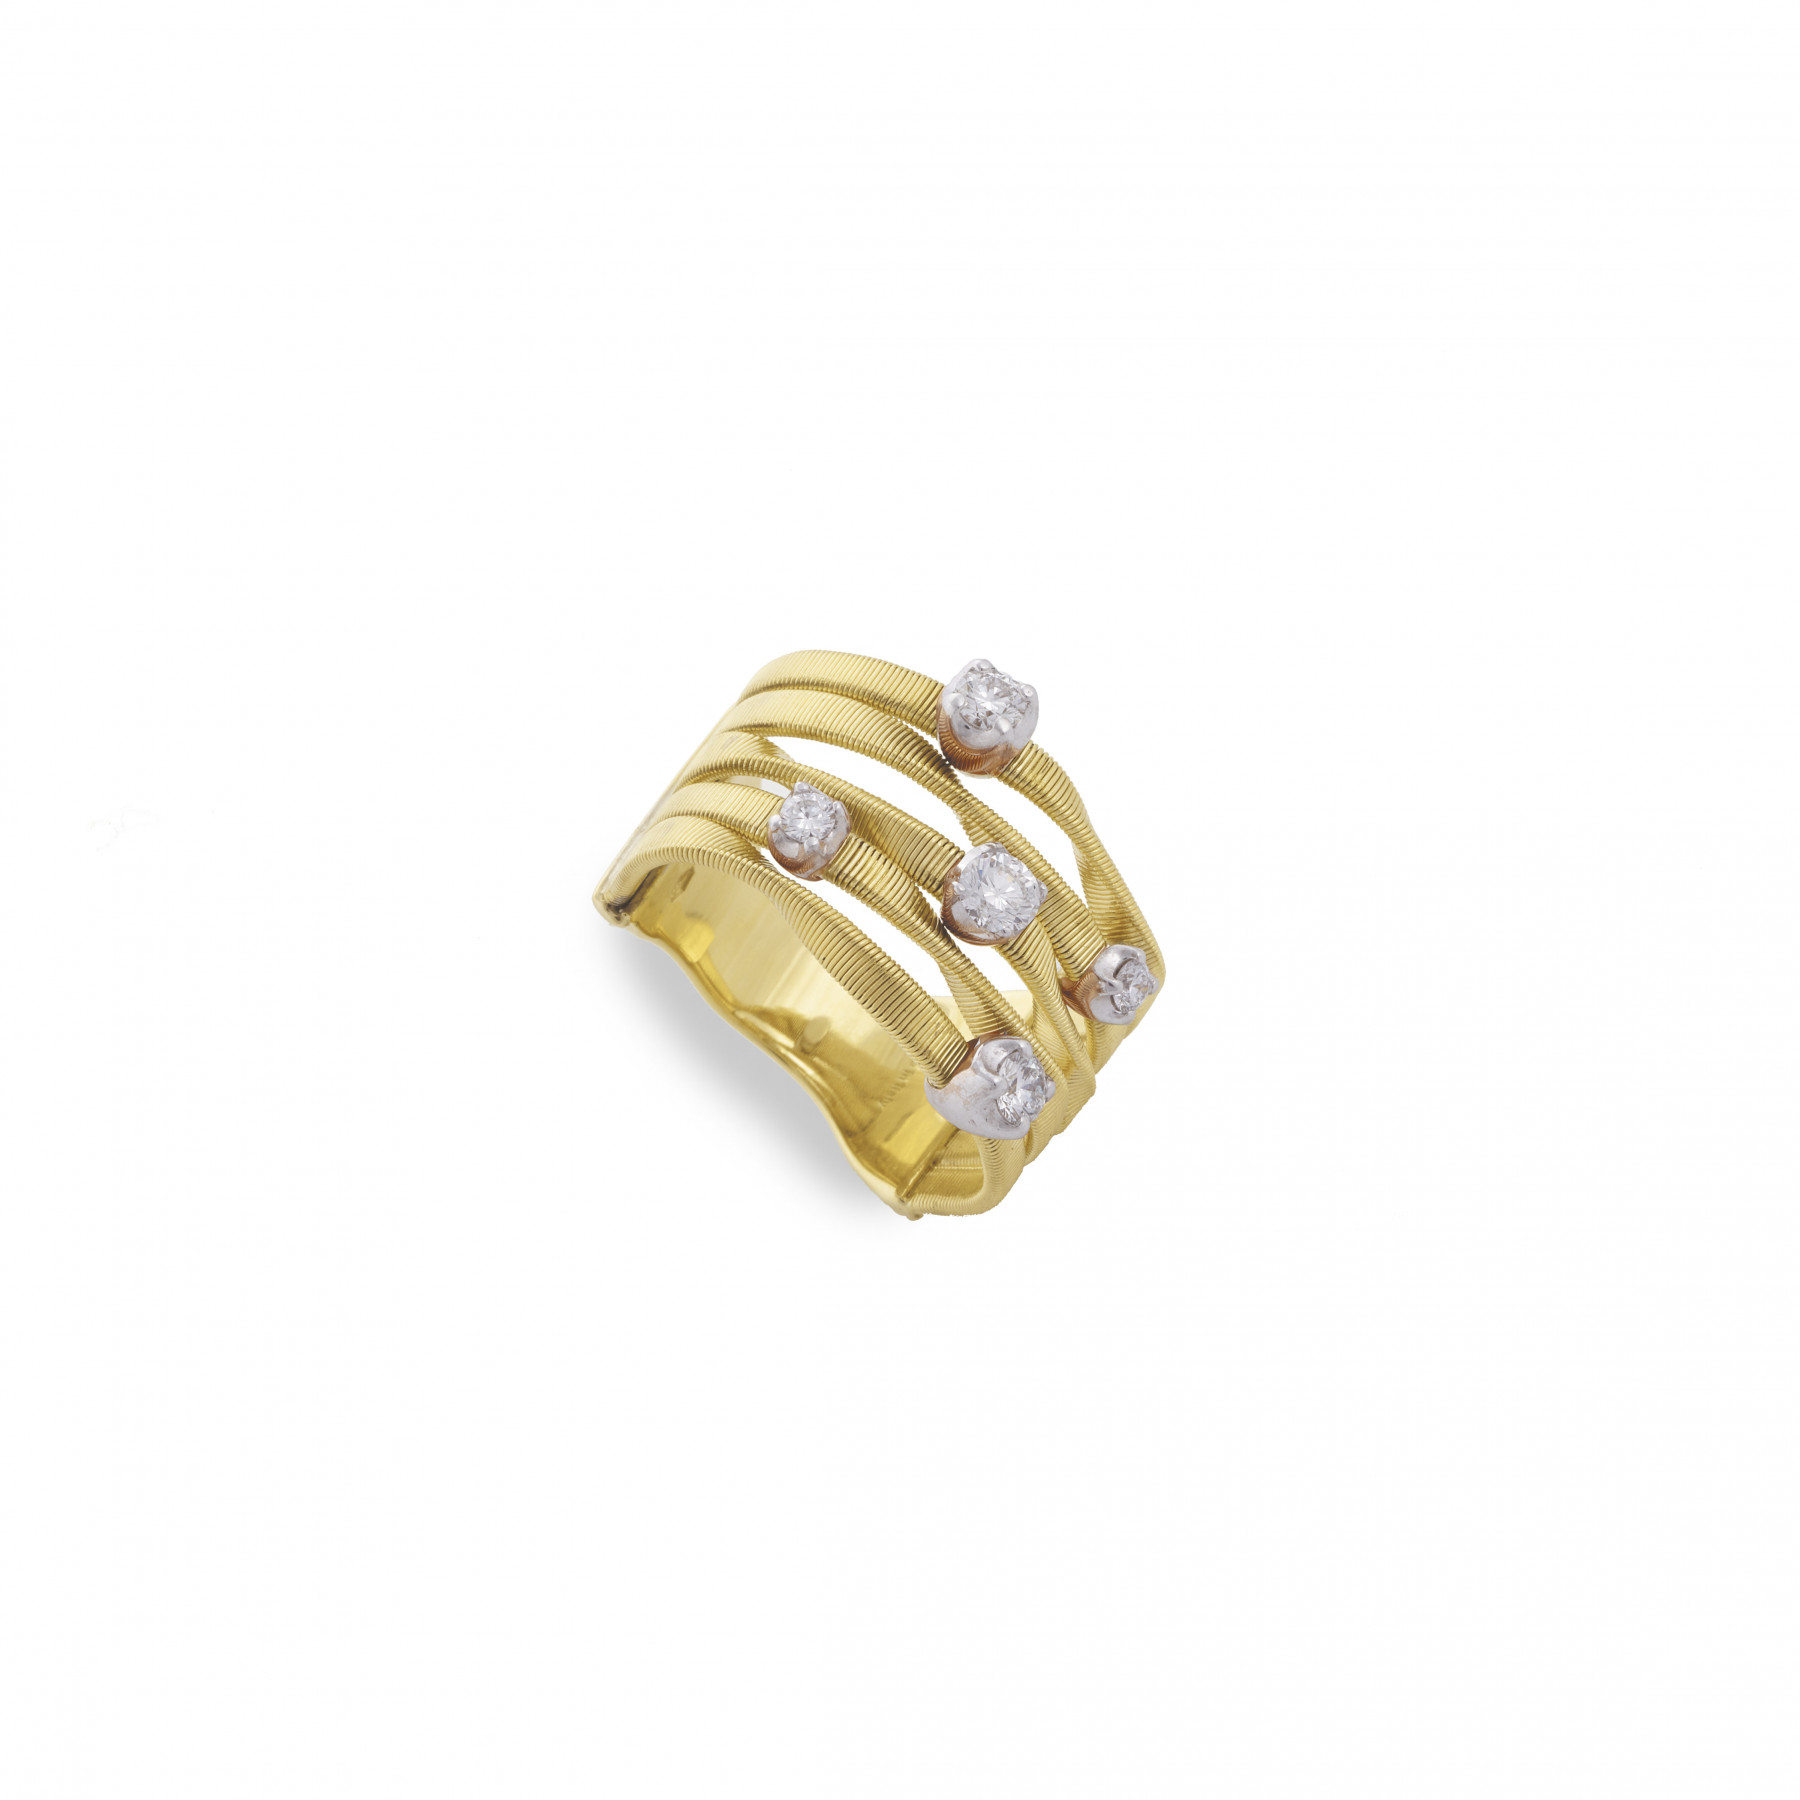 Marco Bicego Marrakech 5 Strand Yellow Gold Ring .25ctw